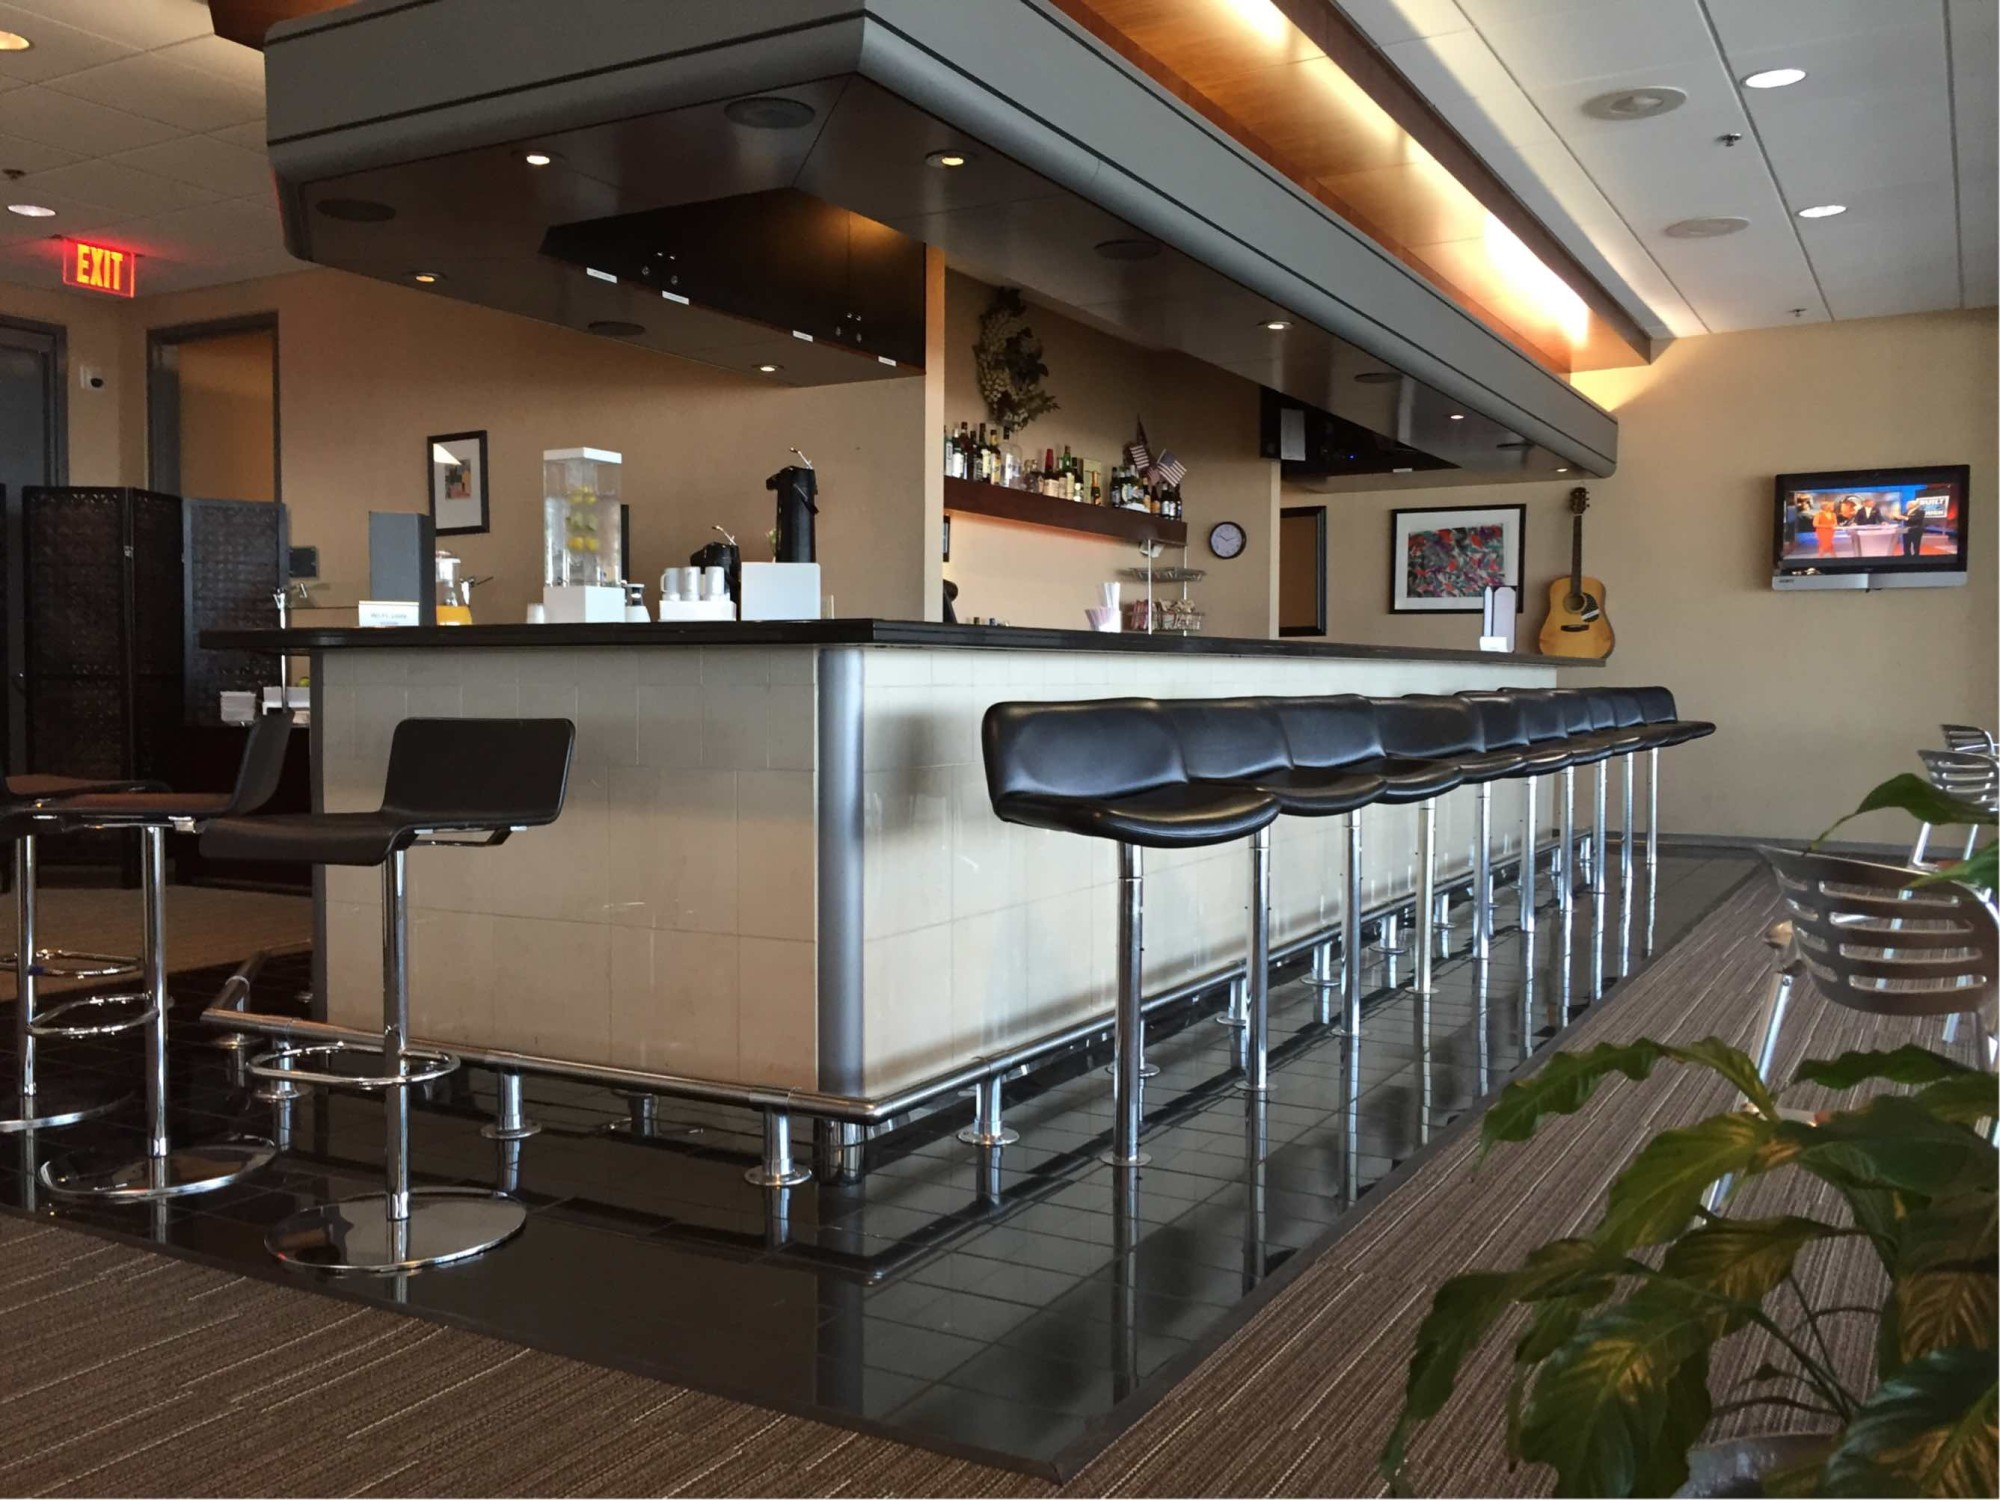 BNA: American Airlines Admirals Club Reviews & Photos - Main ...